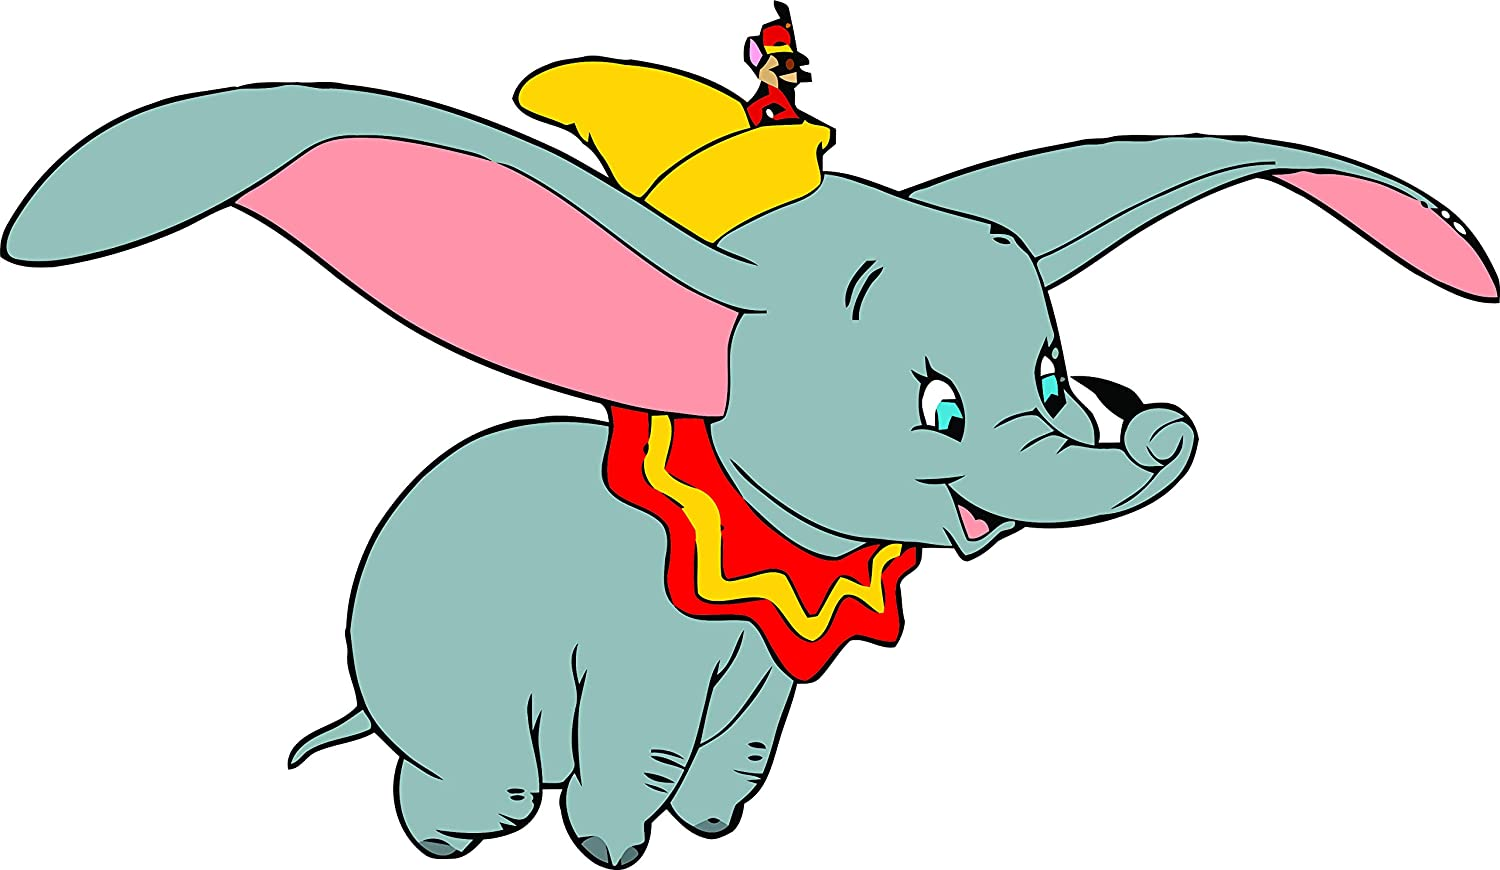 Amazon Com Dumbo Flying Elephant Disneyland Cartoon Cartoons Tv Show Character Baby Nursery Design Babies Kids Kid Vinyl Art Decor Decoration Wall Decals Decal Walls Stickers Sticker Rooms Size 15x20 Inch Home